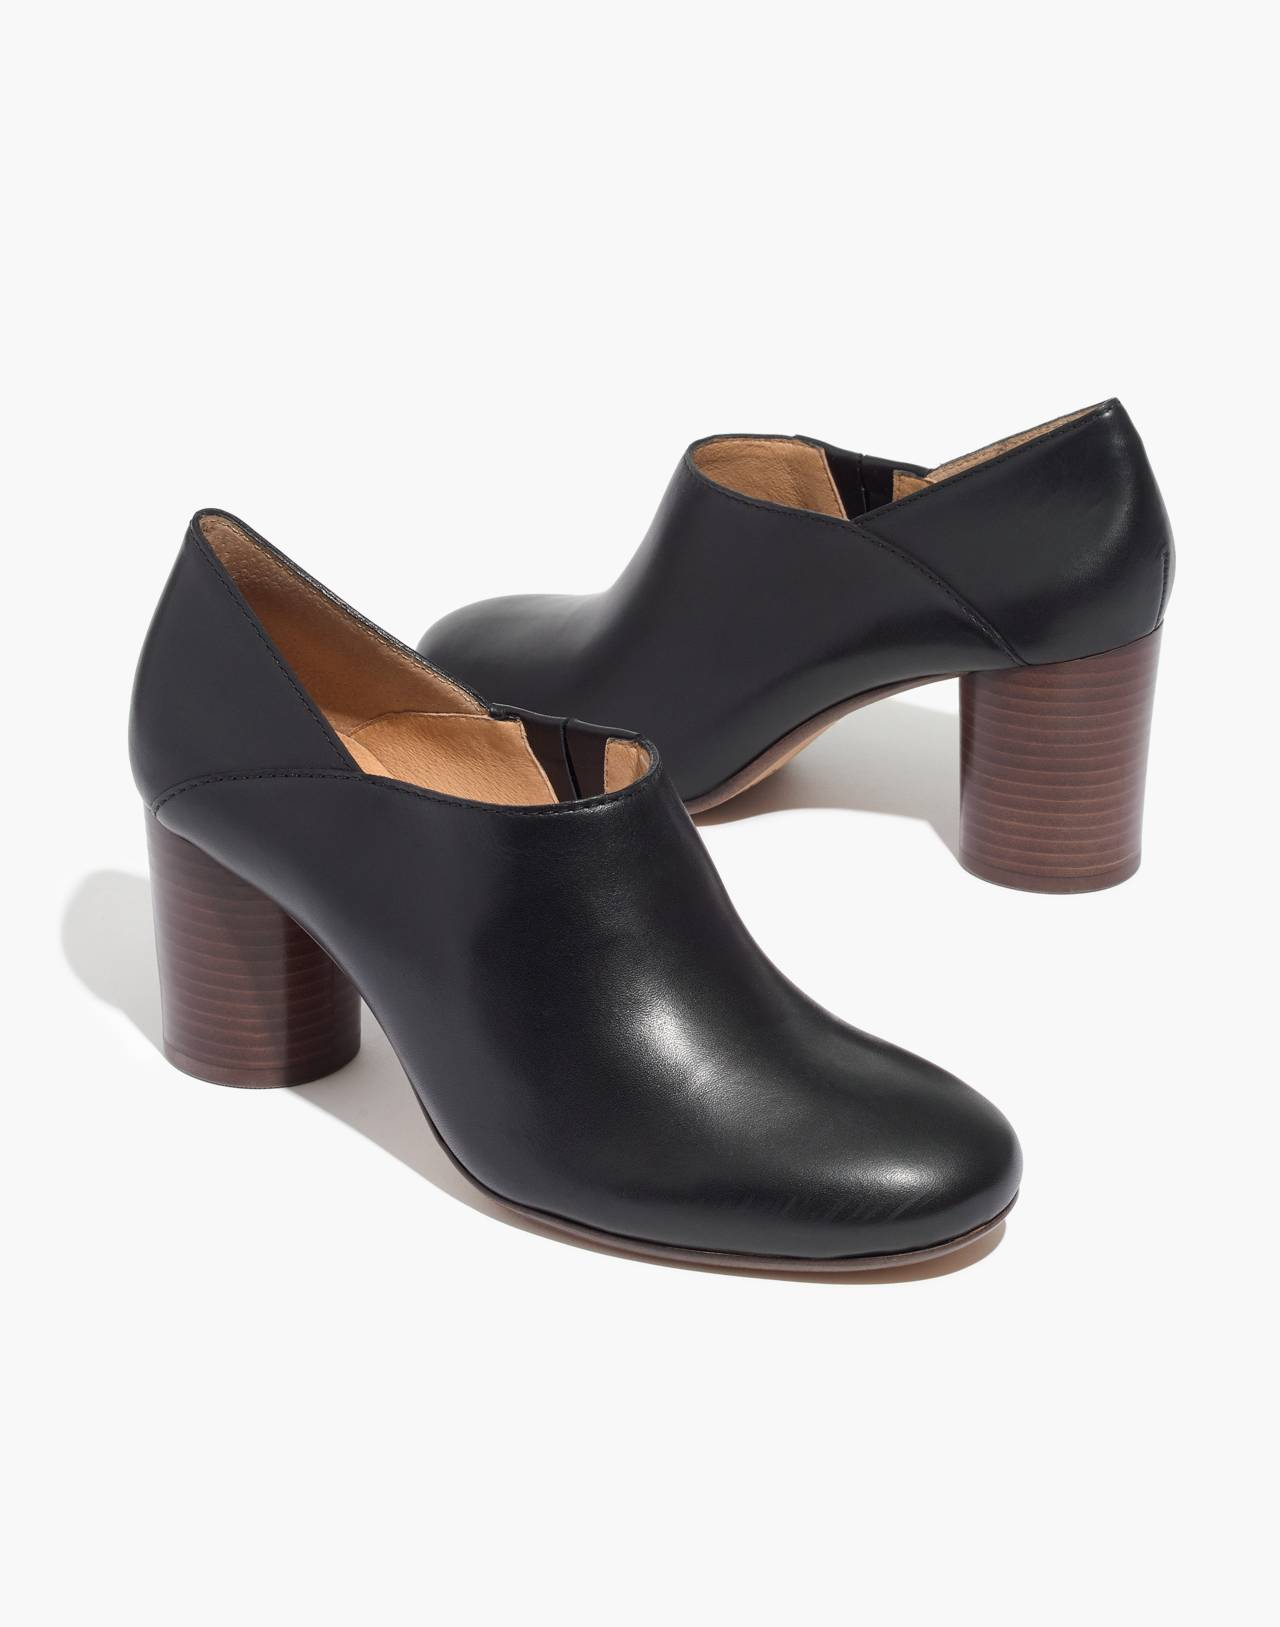 The Rory Lowcut Bootie in true black image 1